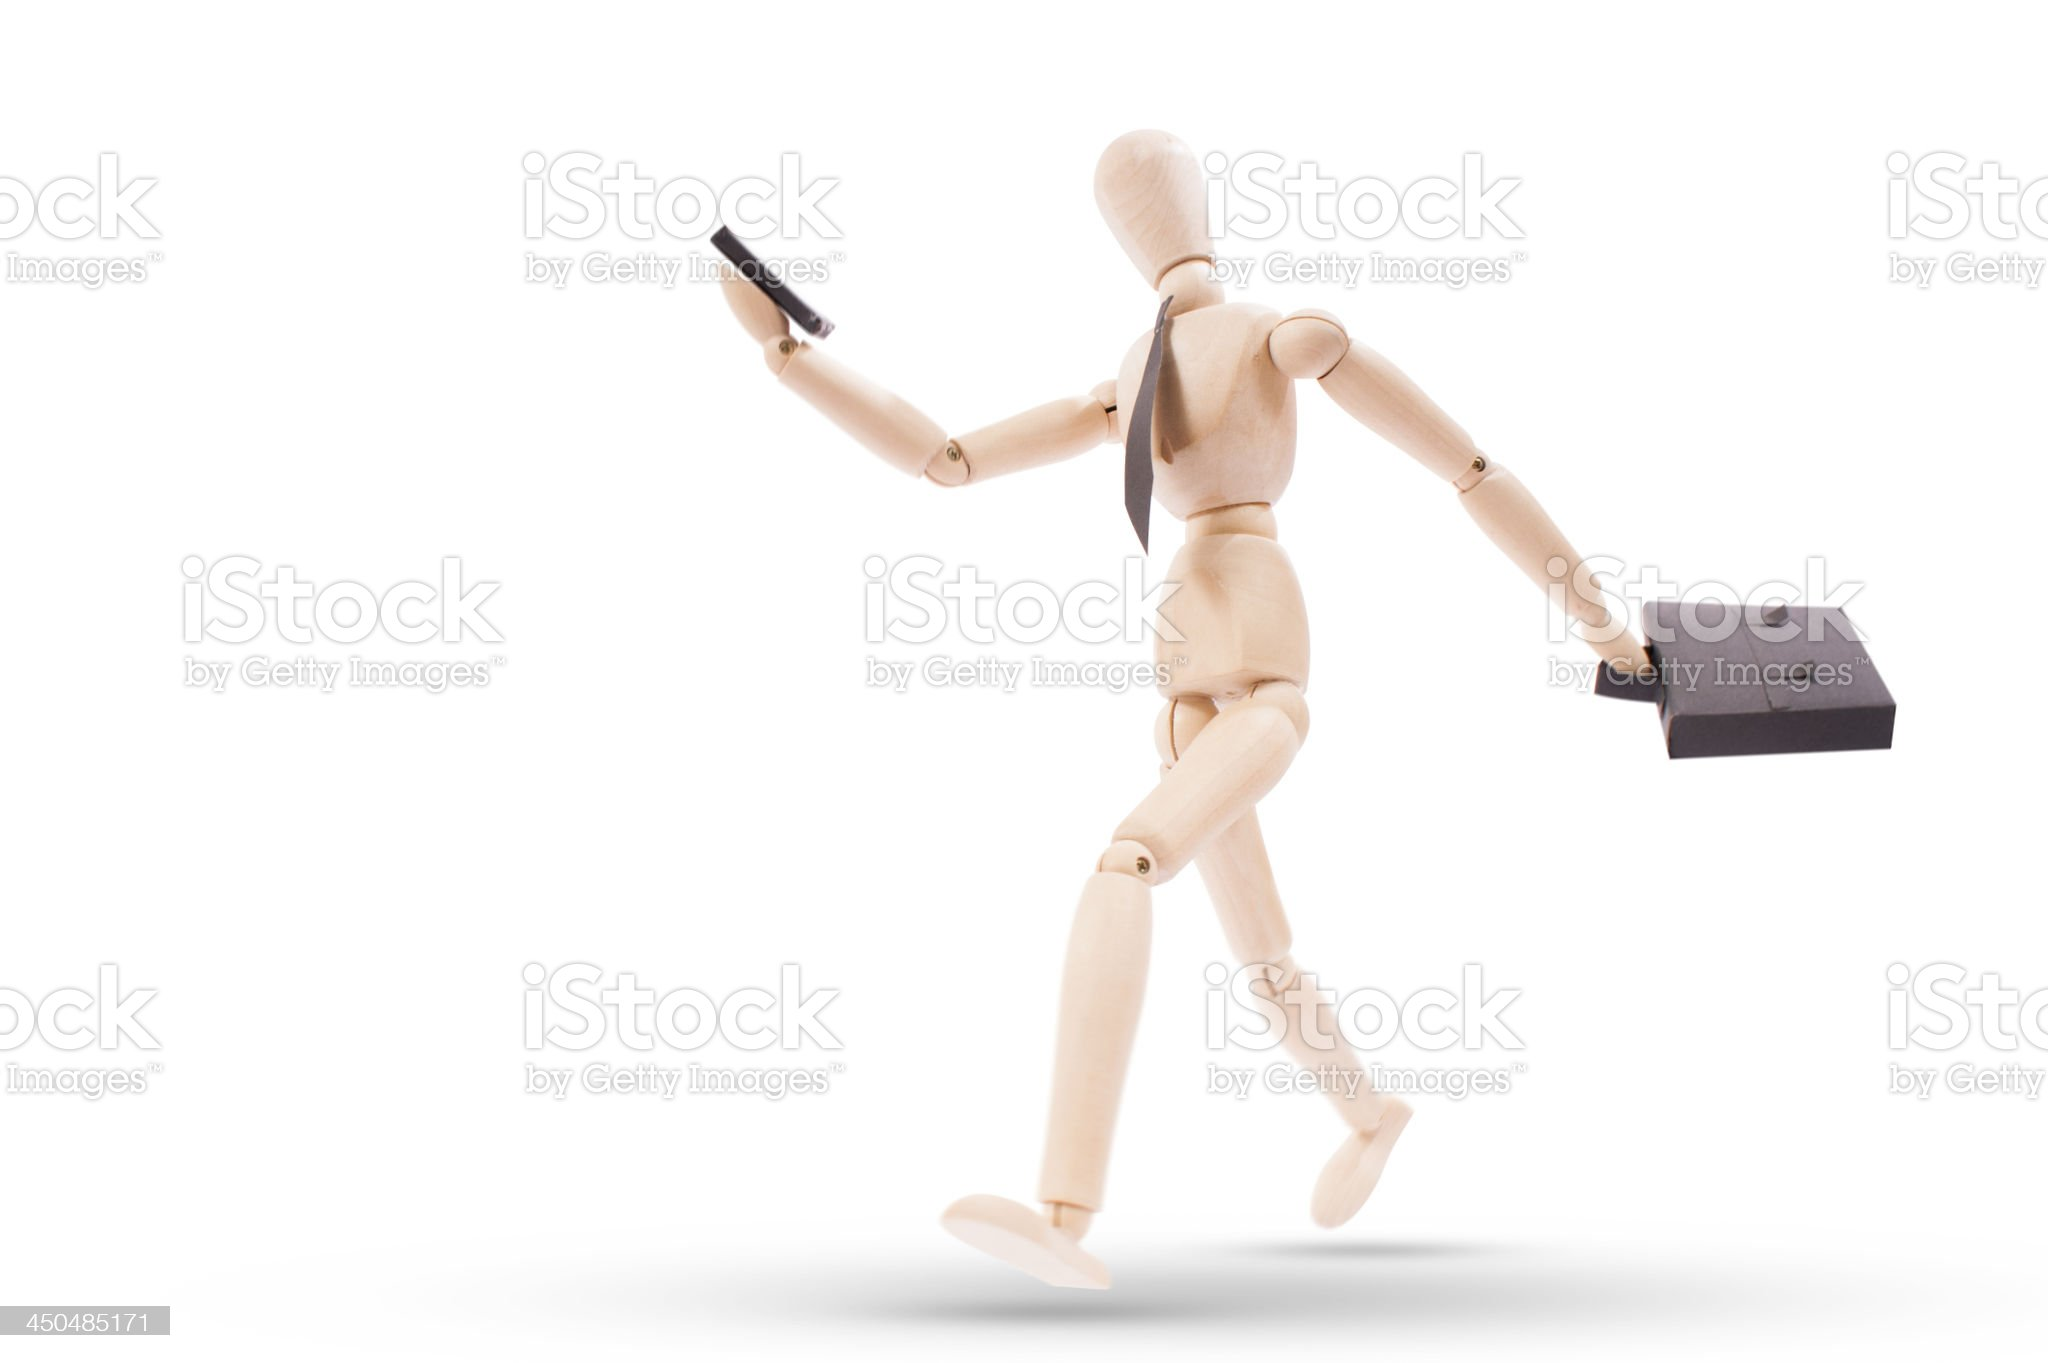 bussiness man running looking to his cellphone with clipping path royalty-free stock photo